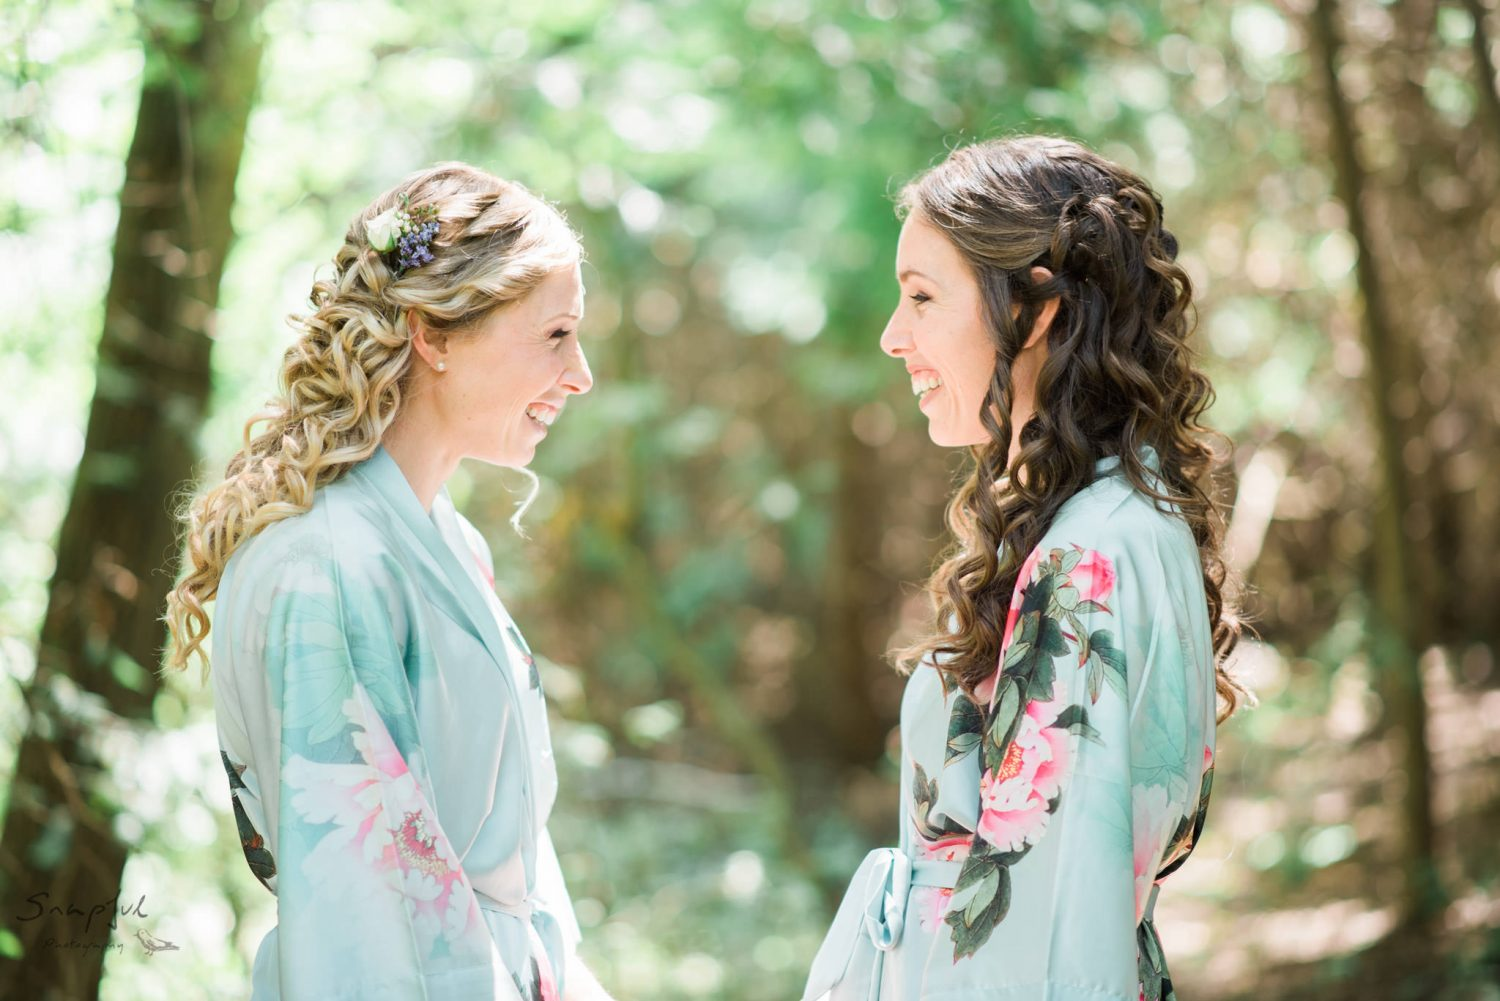 Sisters share an intimate moment in the forest